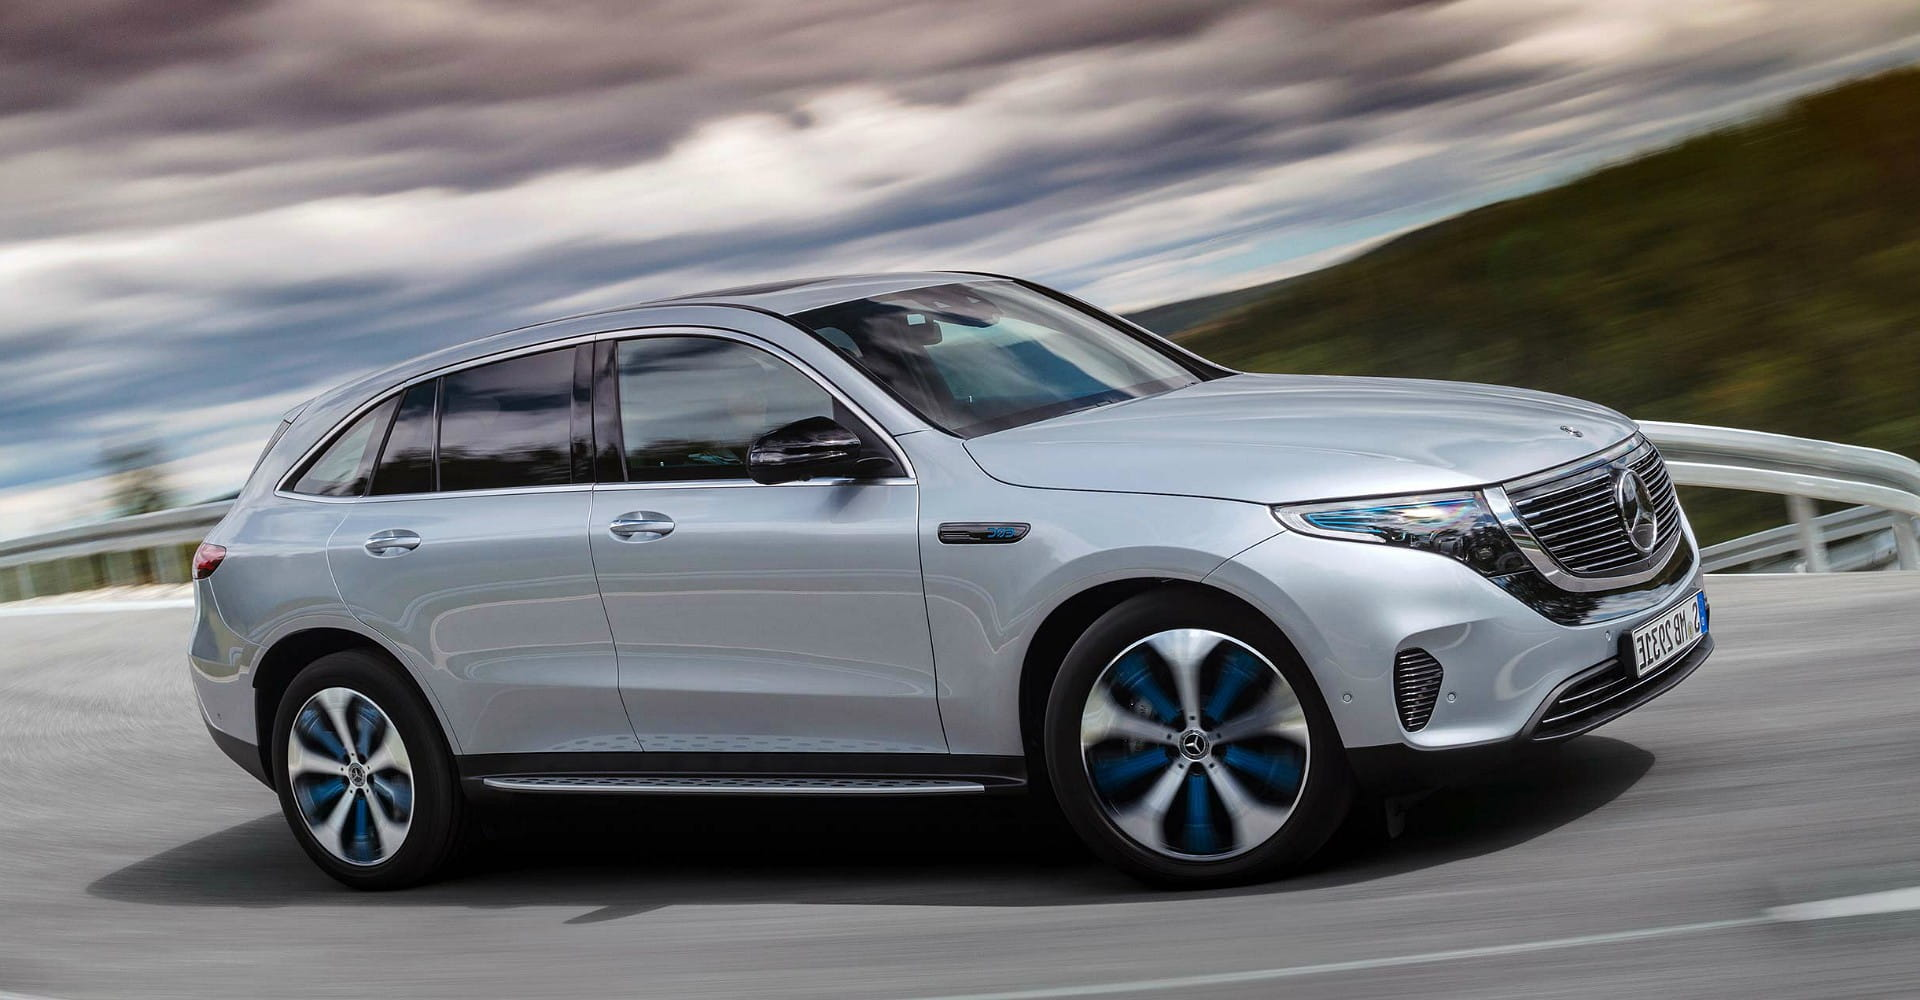 Mercedes EQC - Leasing prices and specifications | LeasePlan